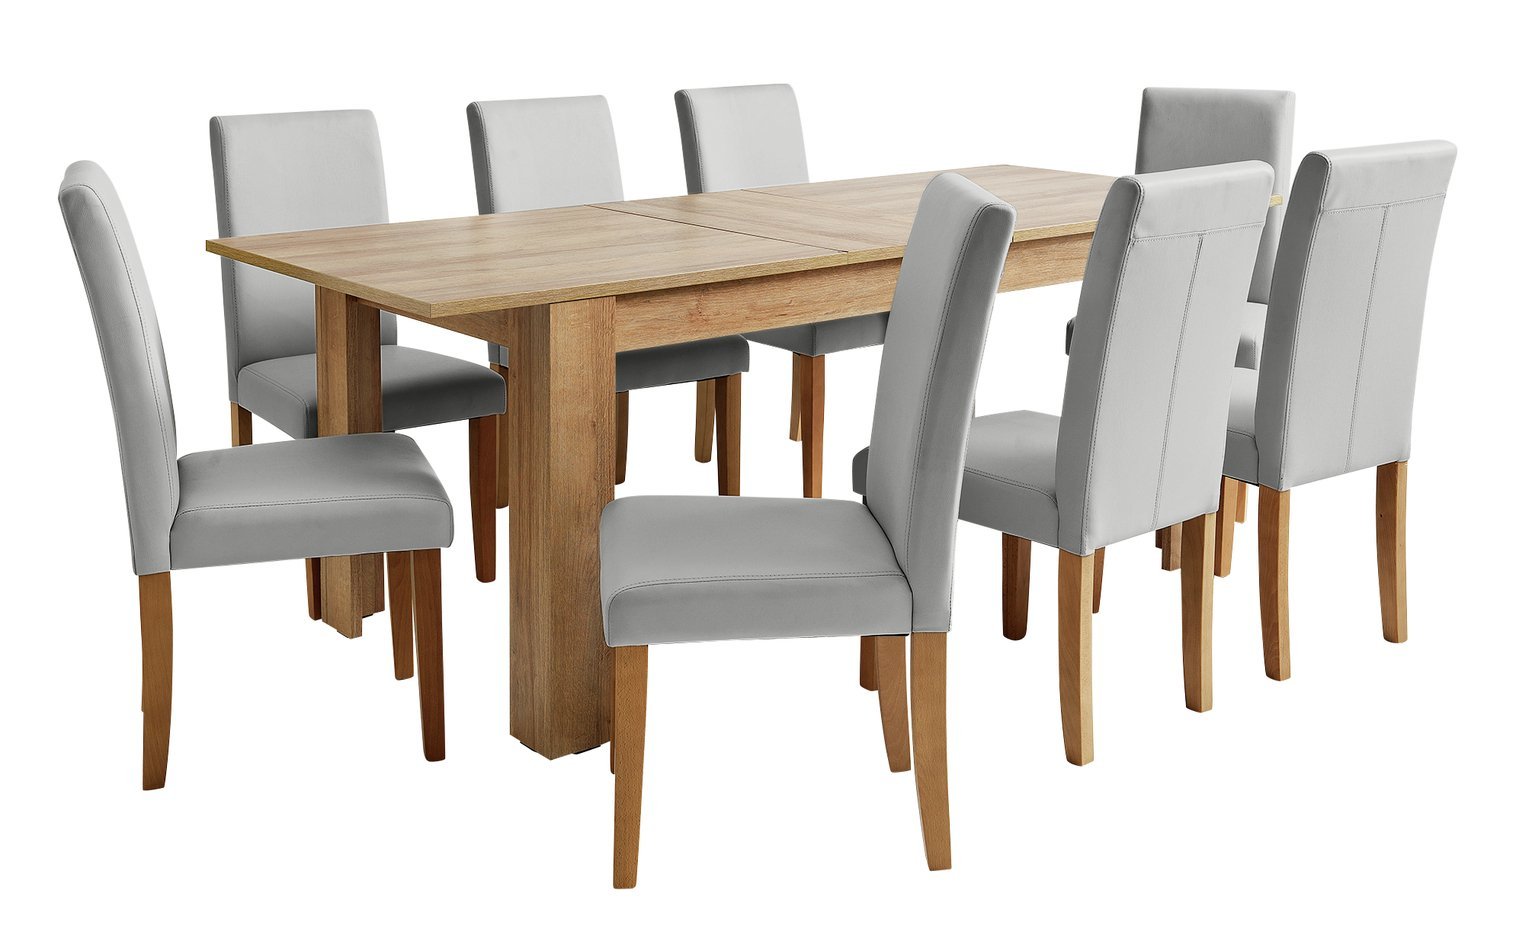 172 & Buy Argos Home Miami XL Extending Table \u0026 8 Grey Chairs | Dining table and chair sets | Argos